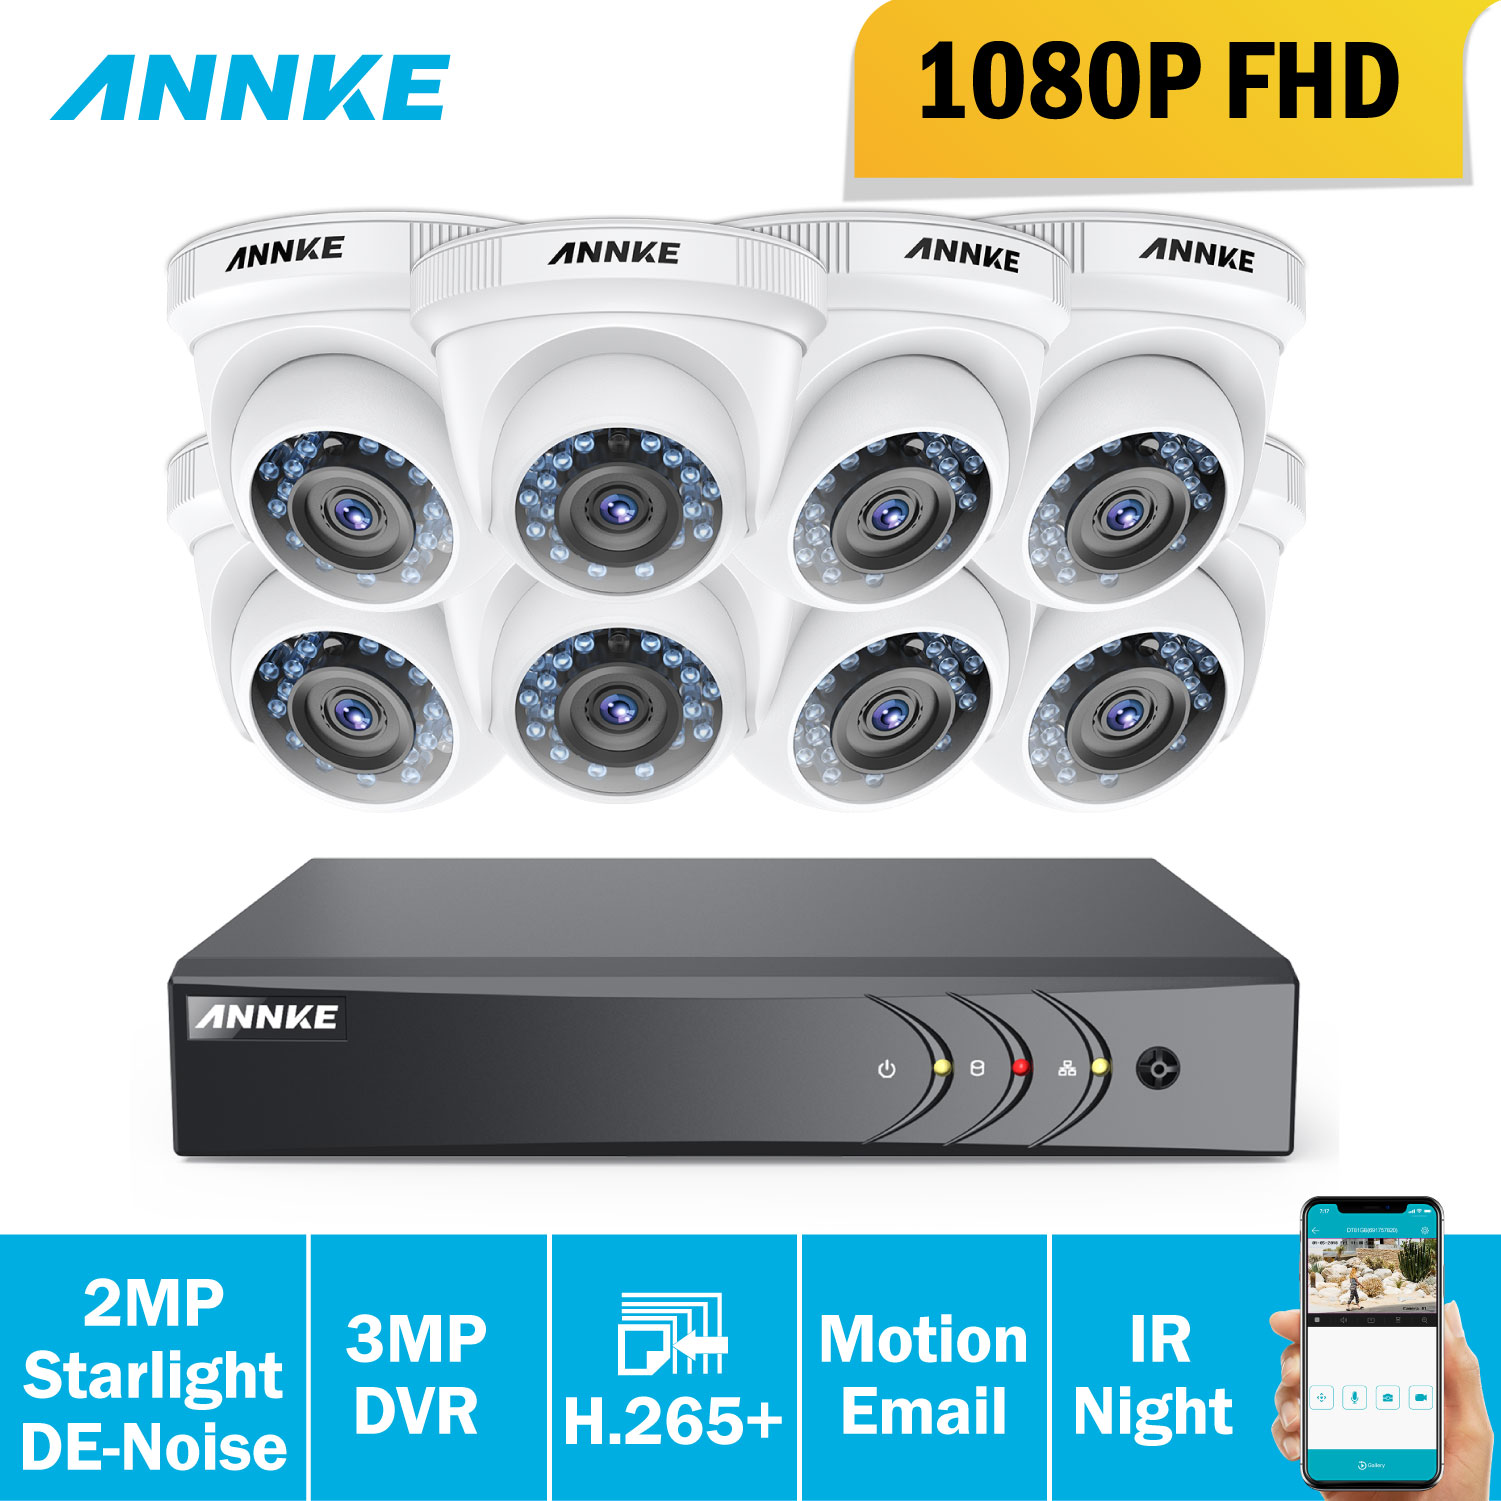 ANNKE HD 3MP H.265+ 8CH CCTV System DVR Kit 8pcs 2MP IP66 Waterproof Indoor Outdoor Security Camera Home Surveillance KitANNKE HD 3MP H.265+ 8CH CCTV System DVR Kit 8pcs 2MP IP66 Waterproof Indoor Outdoor Security Camera Home Surveillance Kit